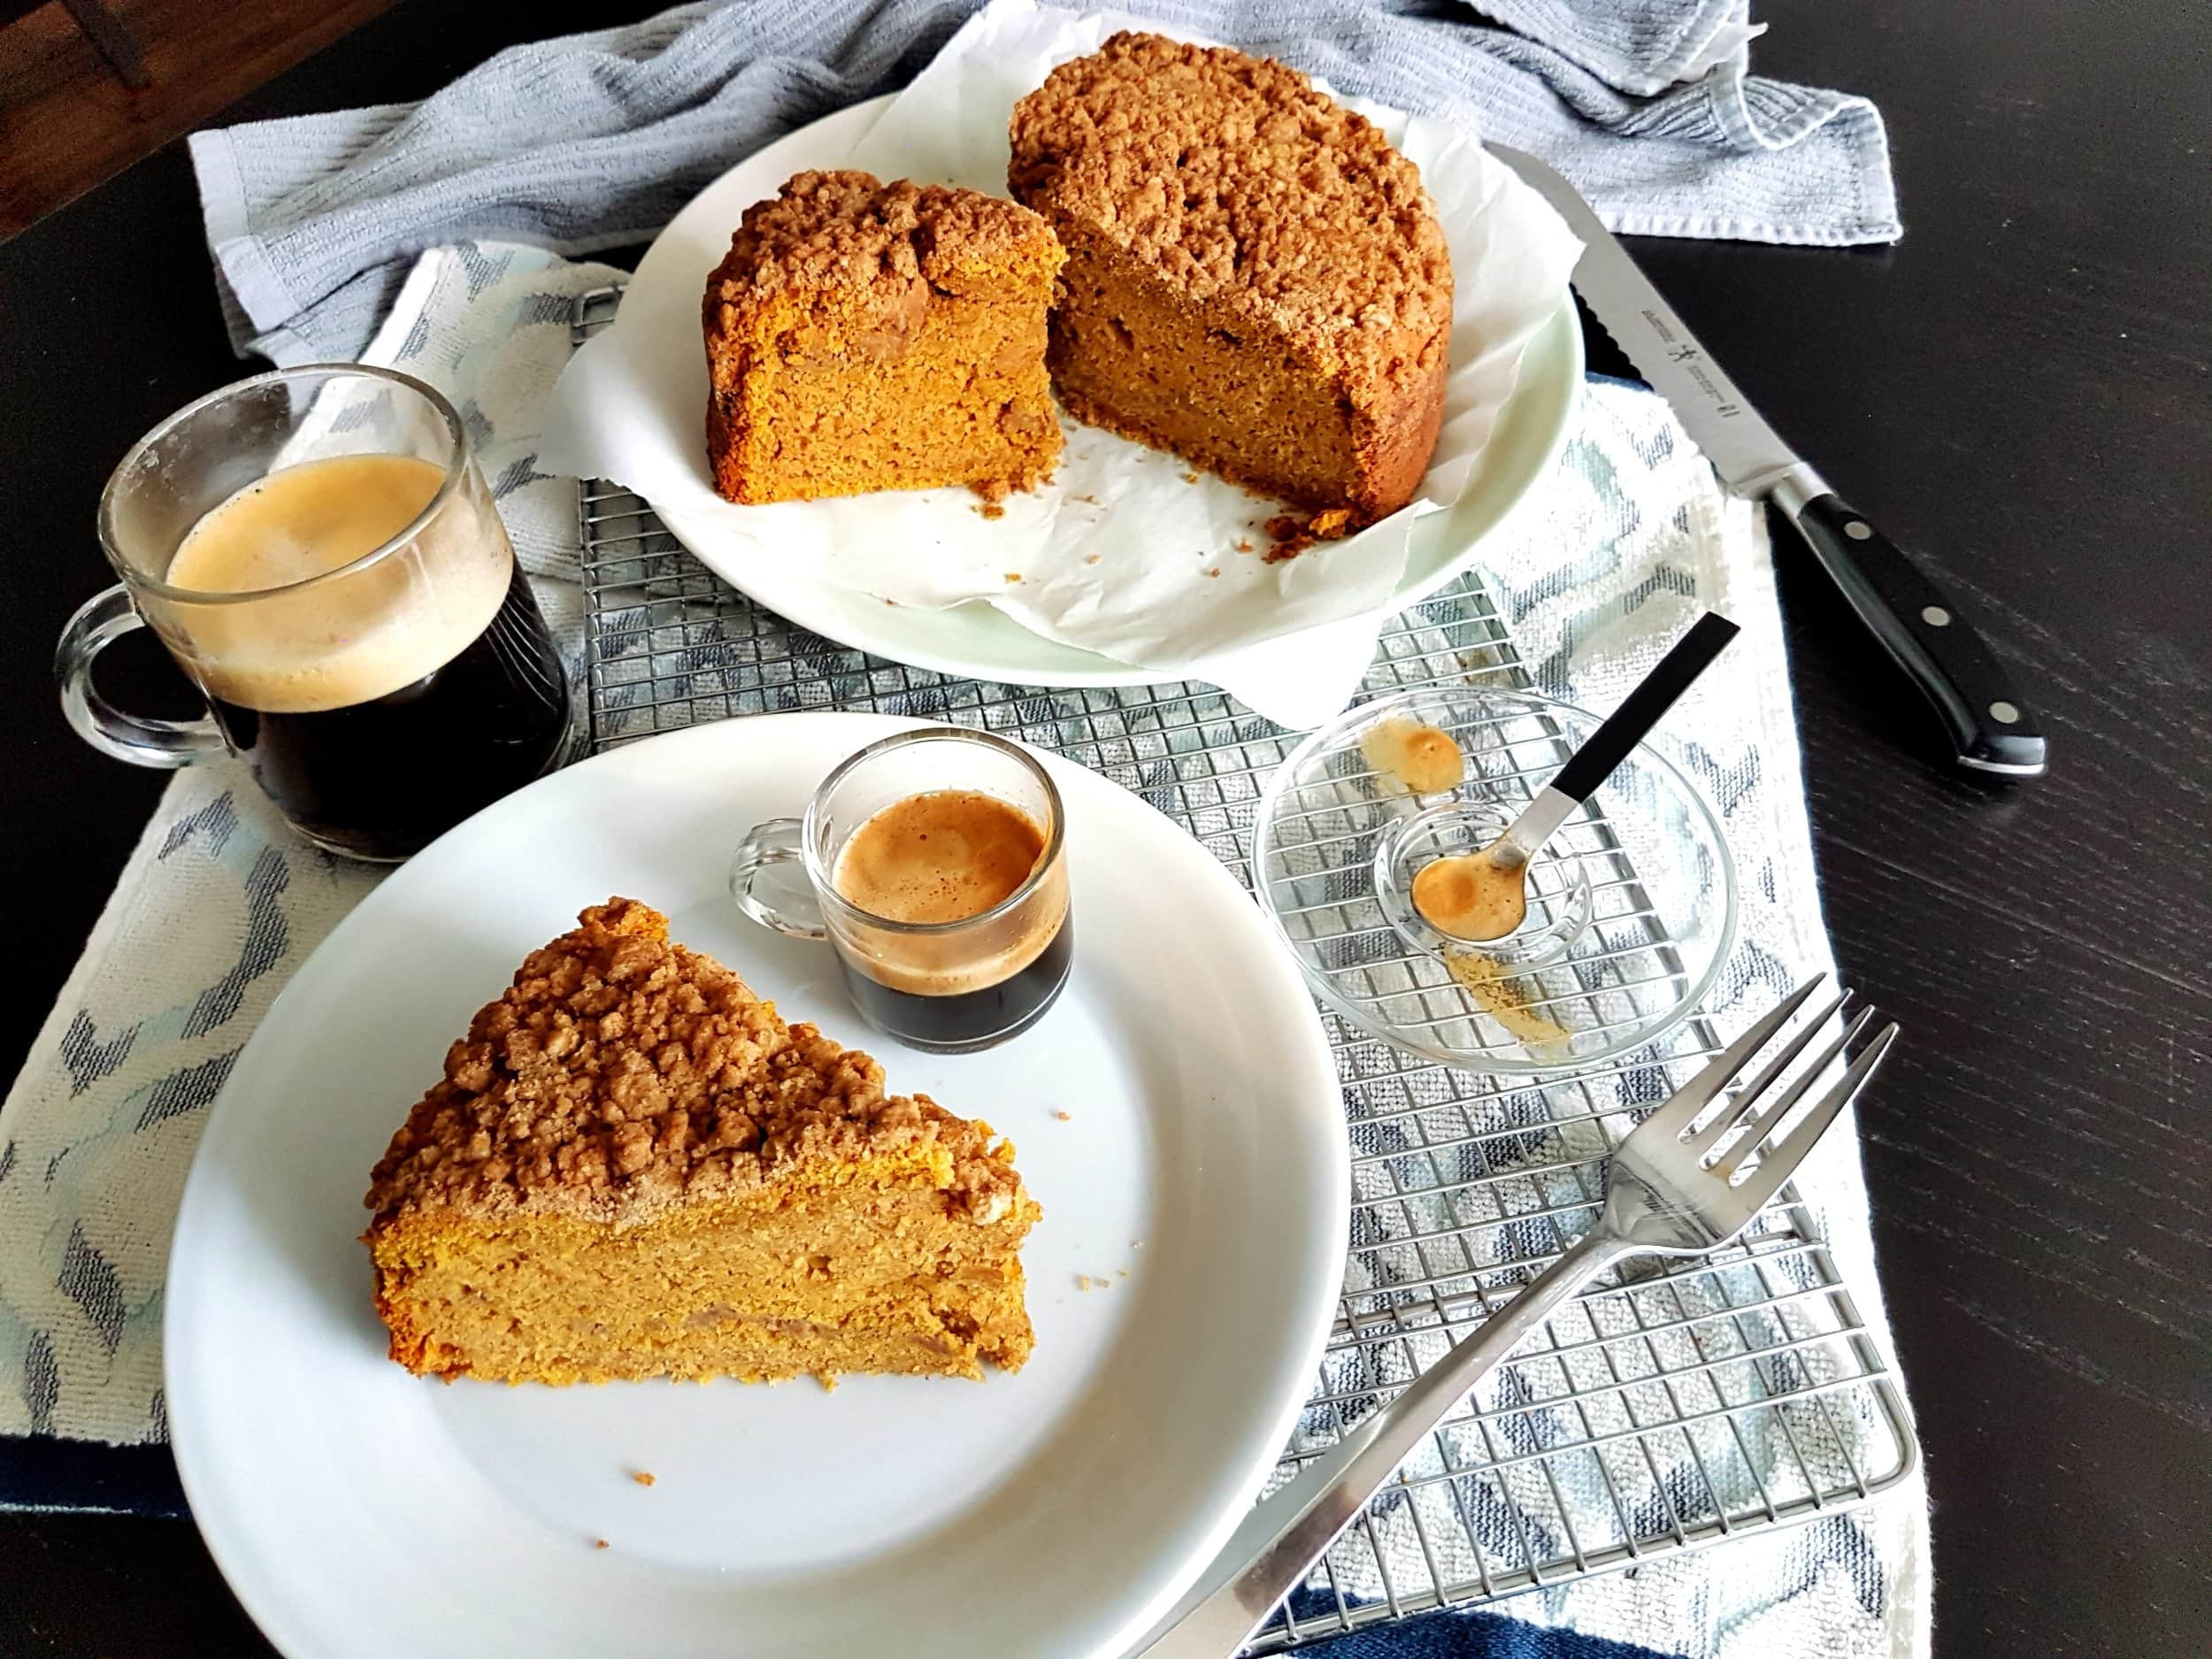 A slice of Pumpkin Sour Cream Coffee Cake with a cup of coffee.